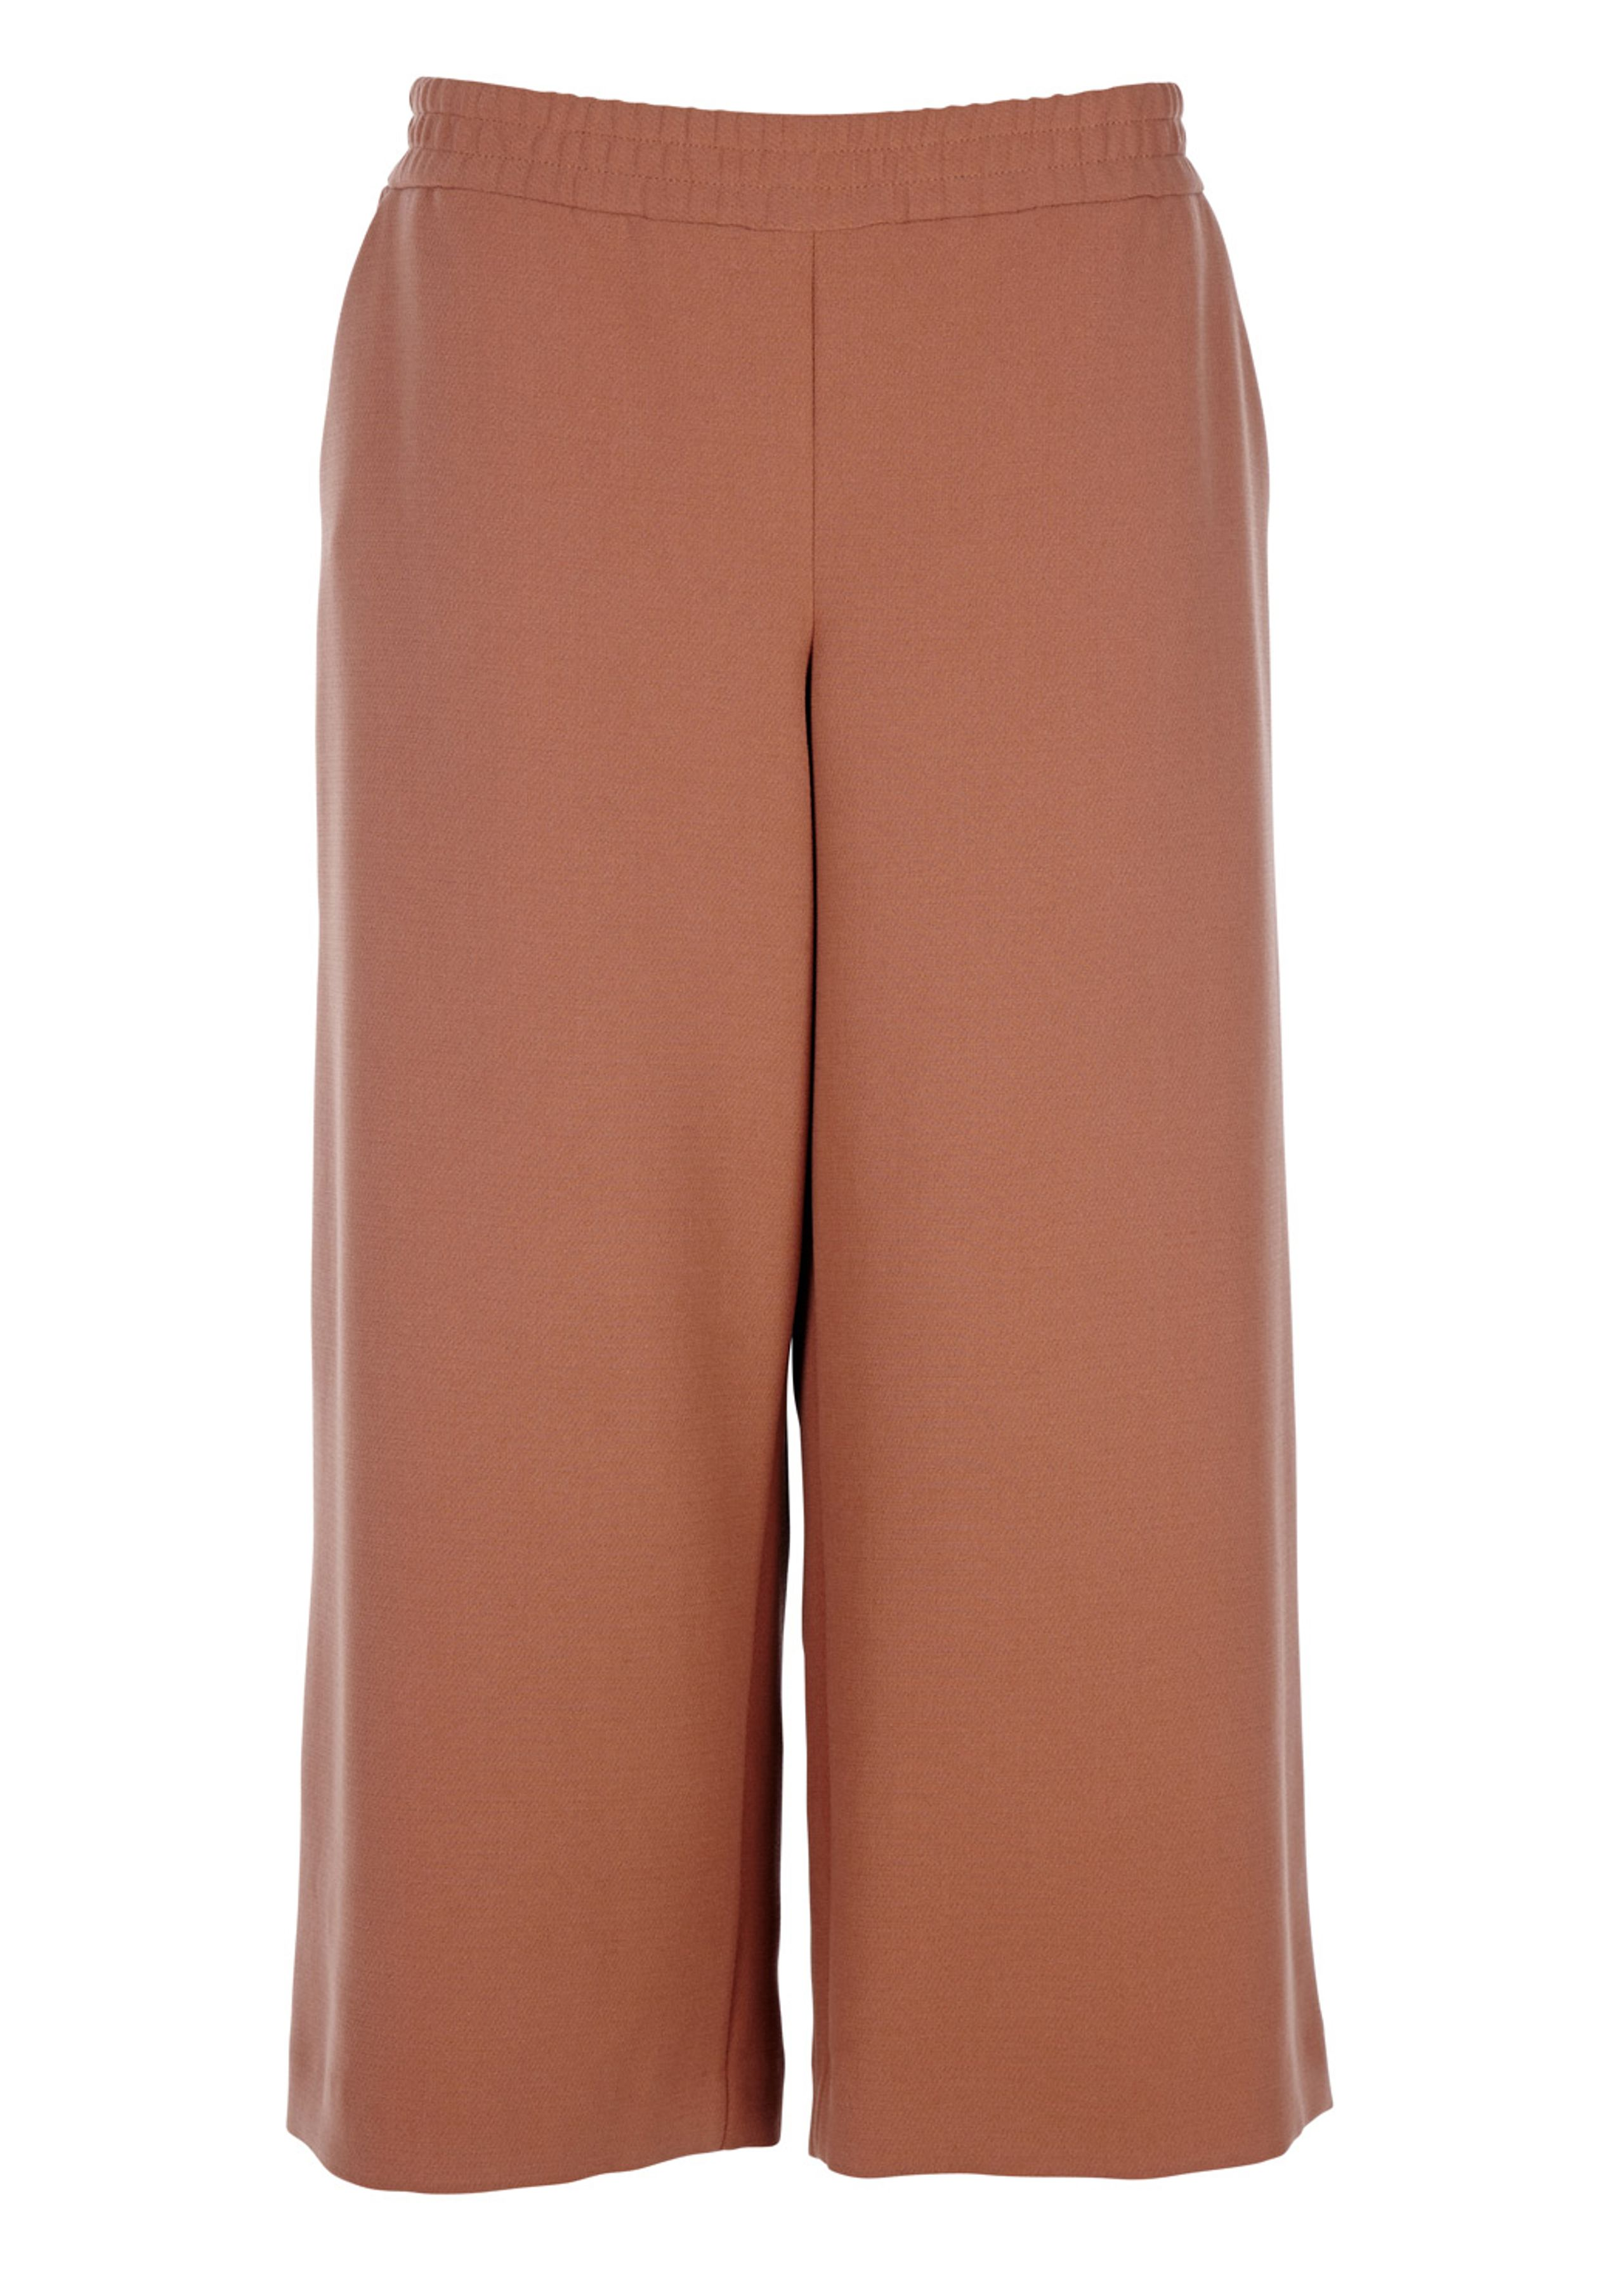 Sherry culottes